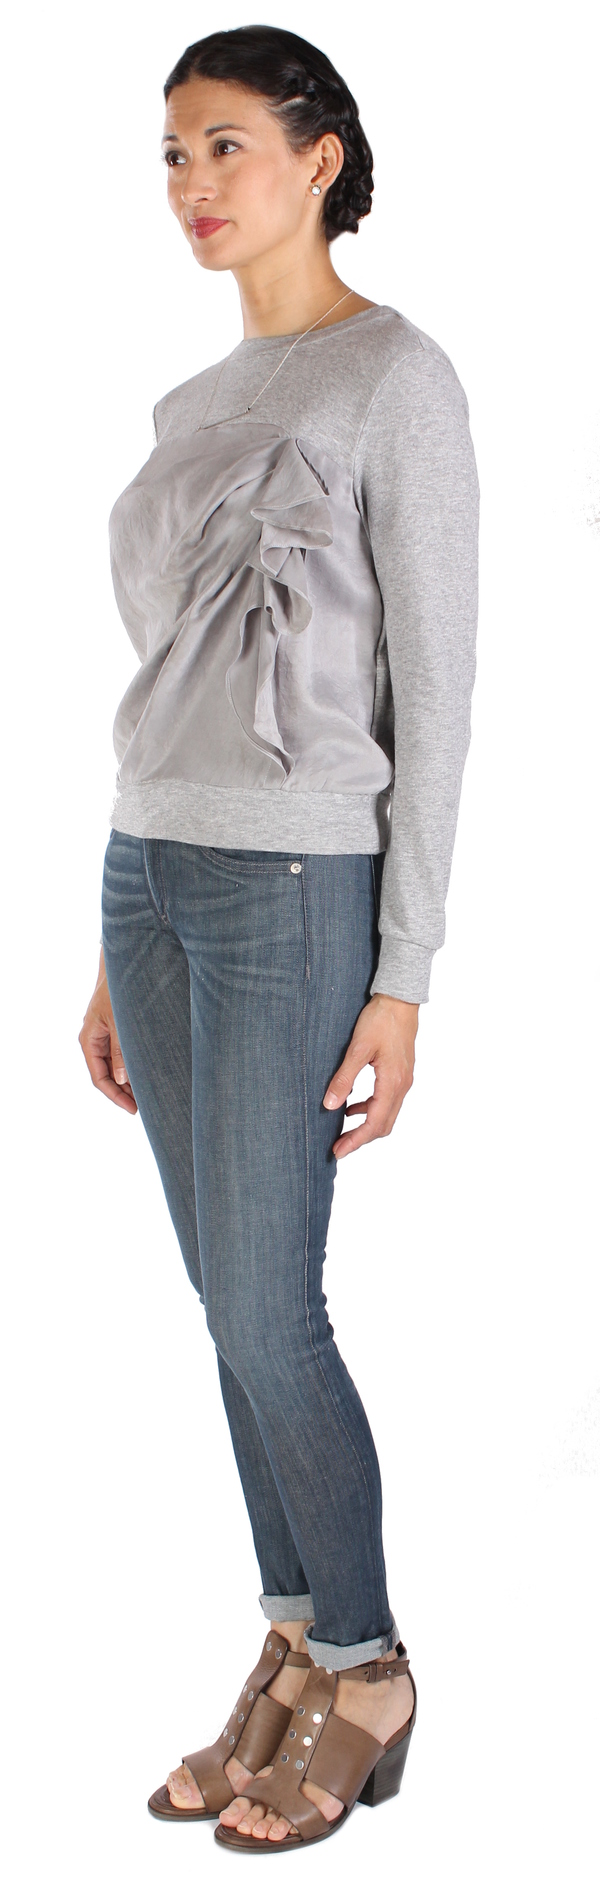 Clu Paneled Sweat Top